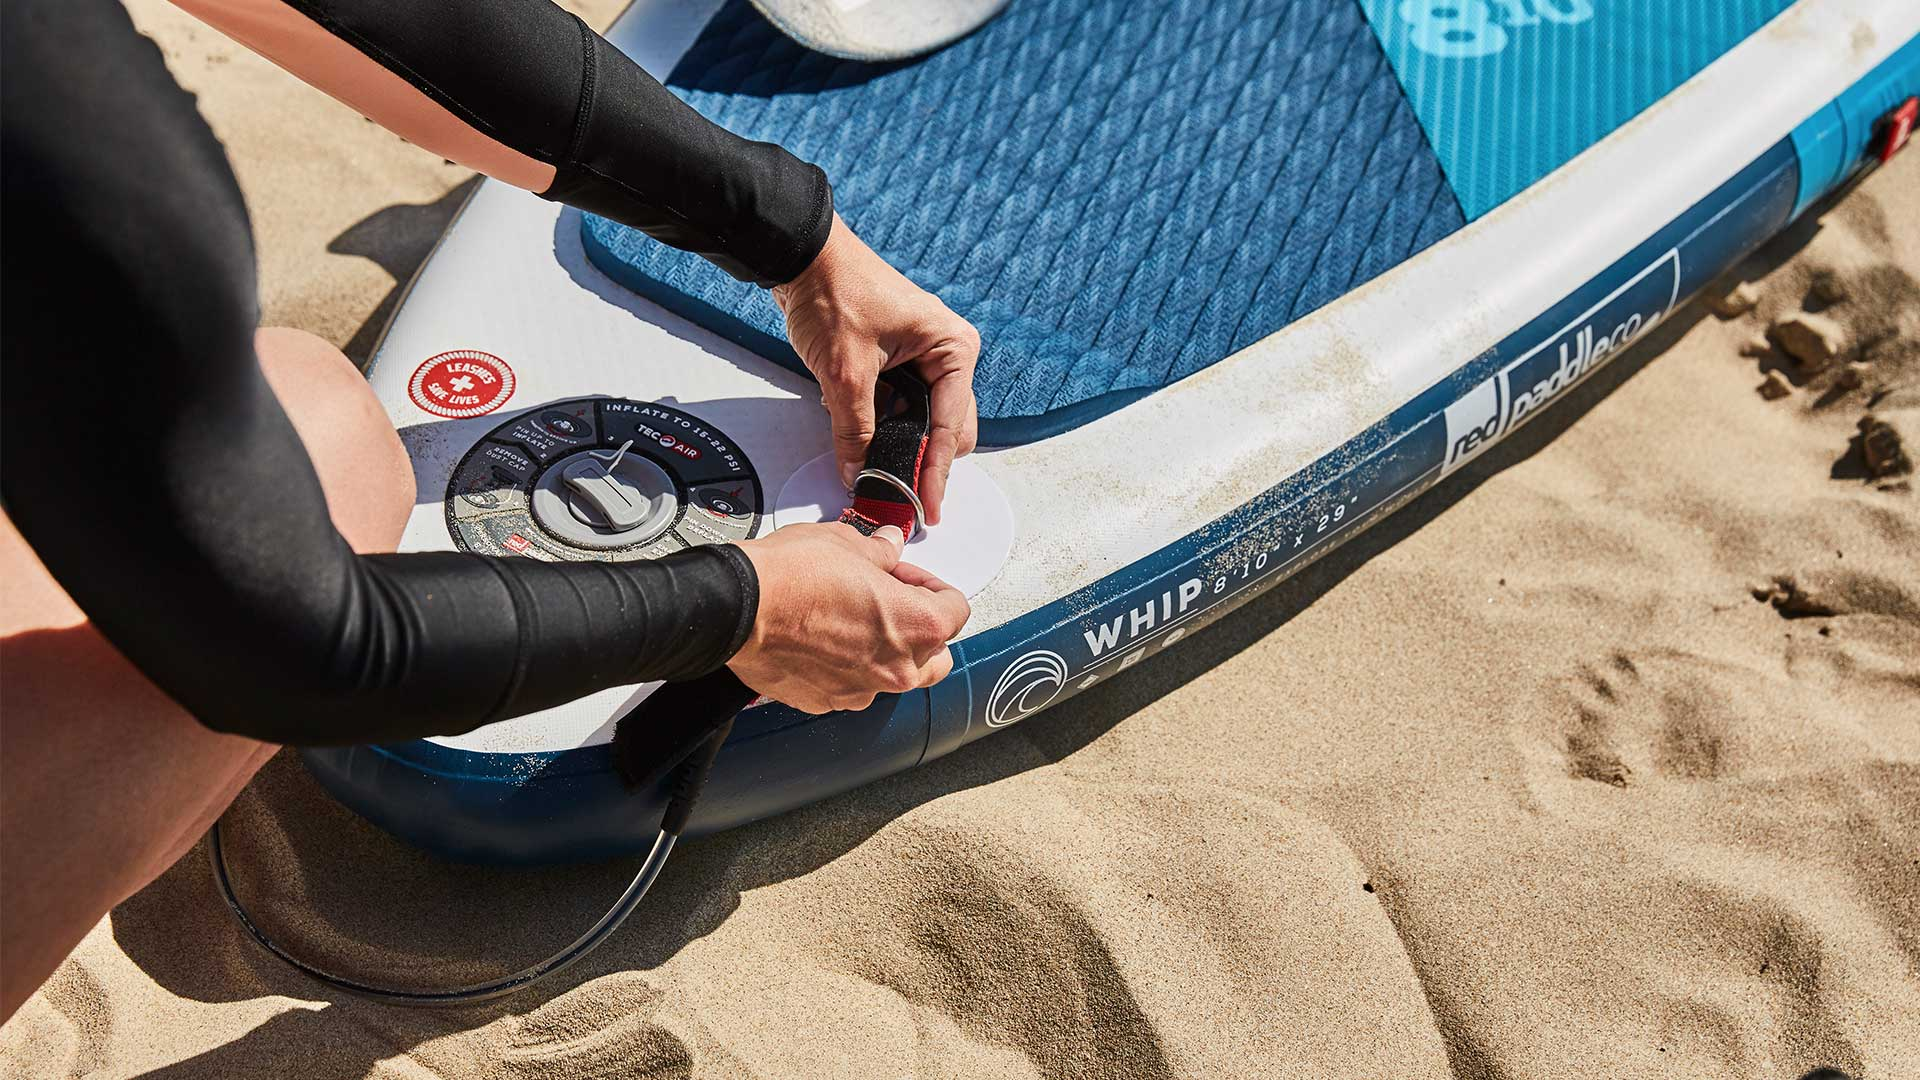 redpaddleco-810-whip-msl-inflatable-paddle-board-desktop-gallery-valve